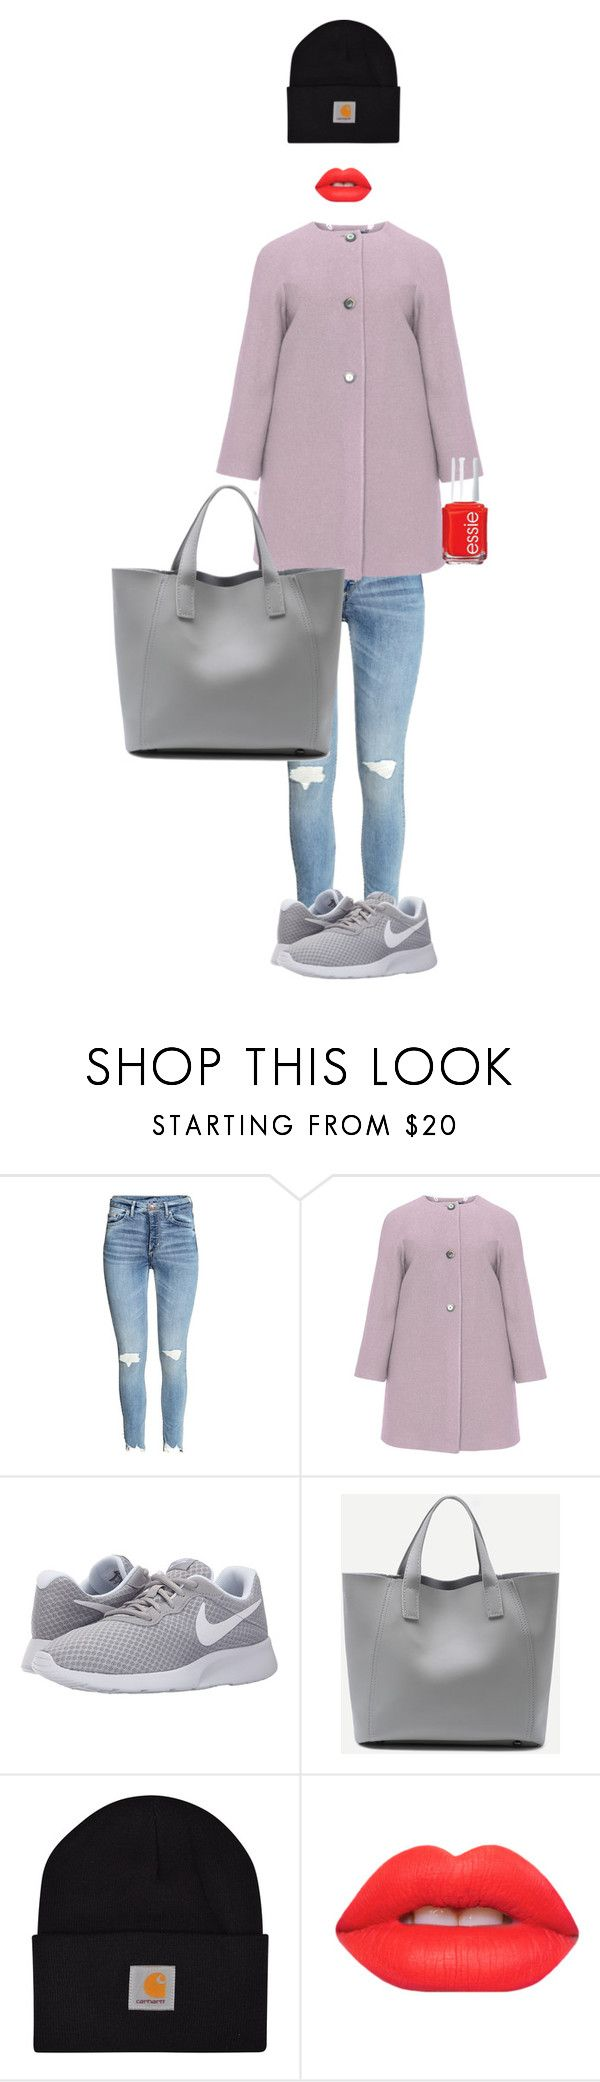 """winer #1"" by meanixee on Polyvore featuring navabi, NIKE, Carhartt, Lime Crime and Essie"